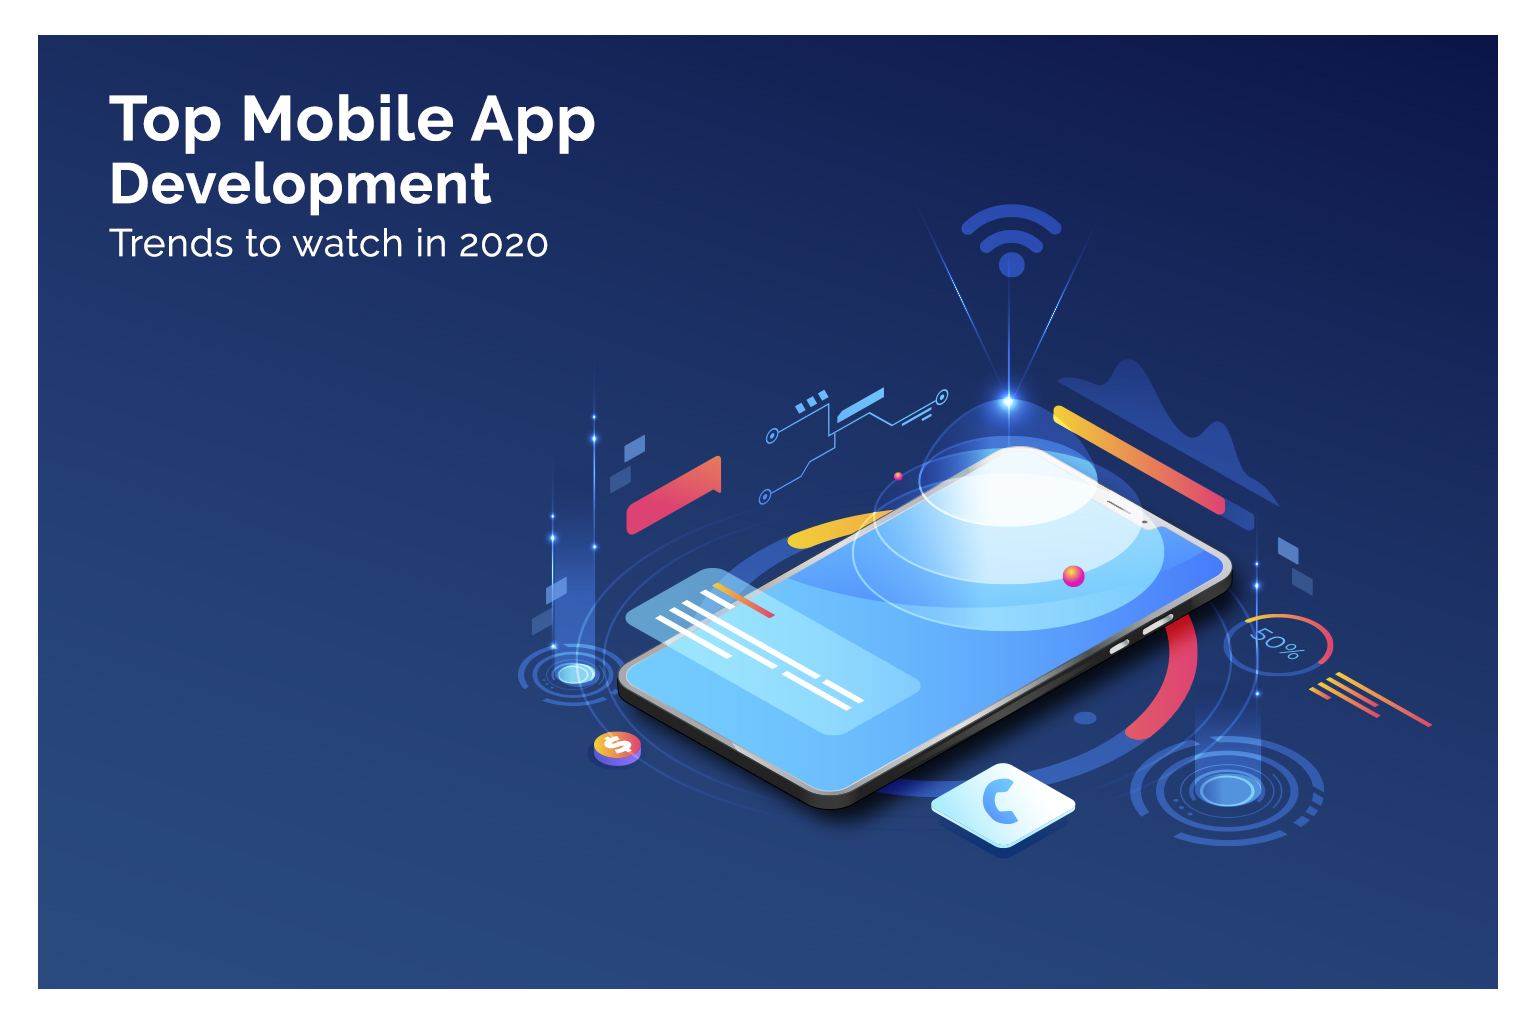 Top Mobile App Development Trends Ready to Hit 2020